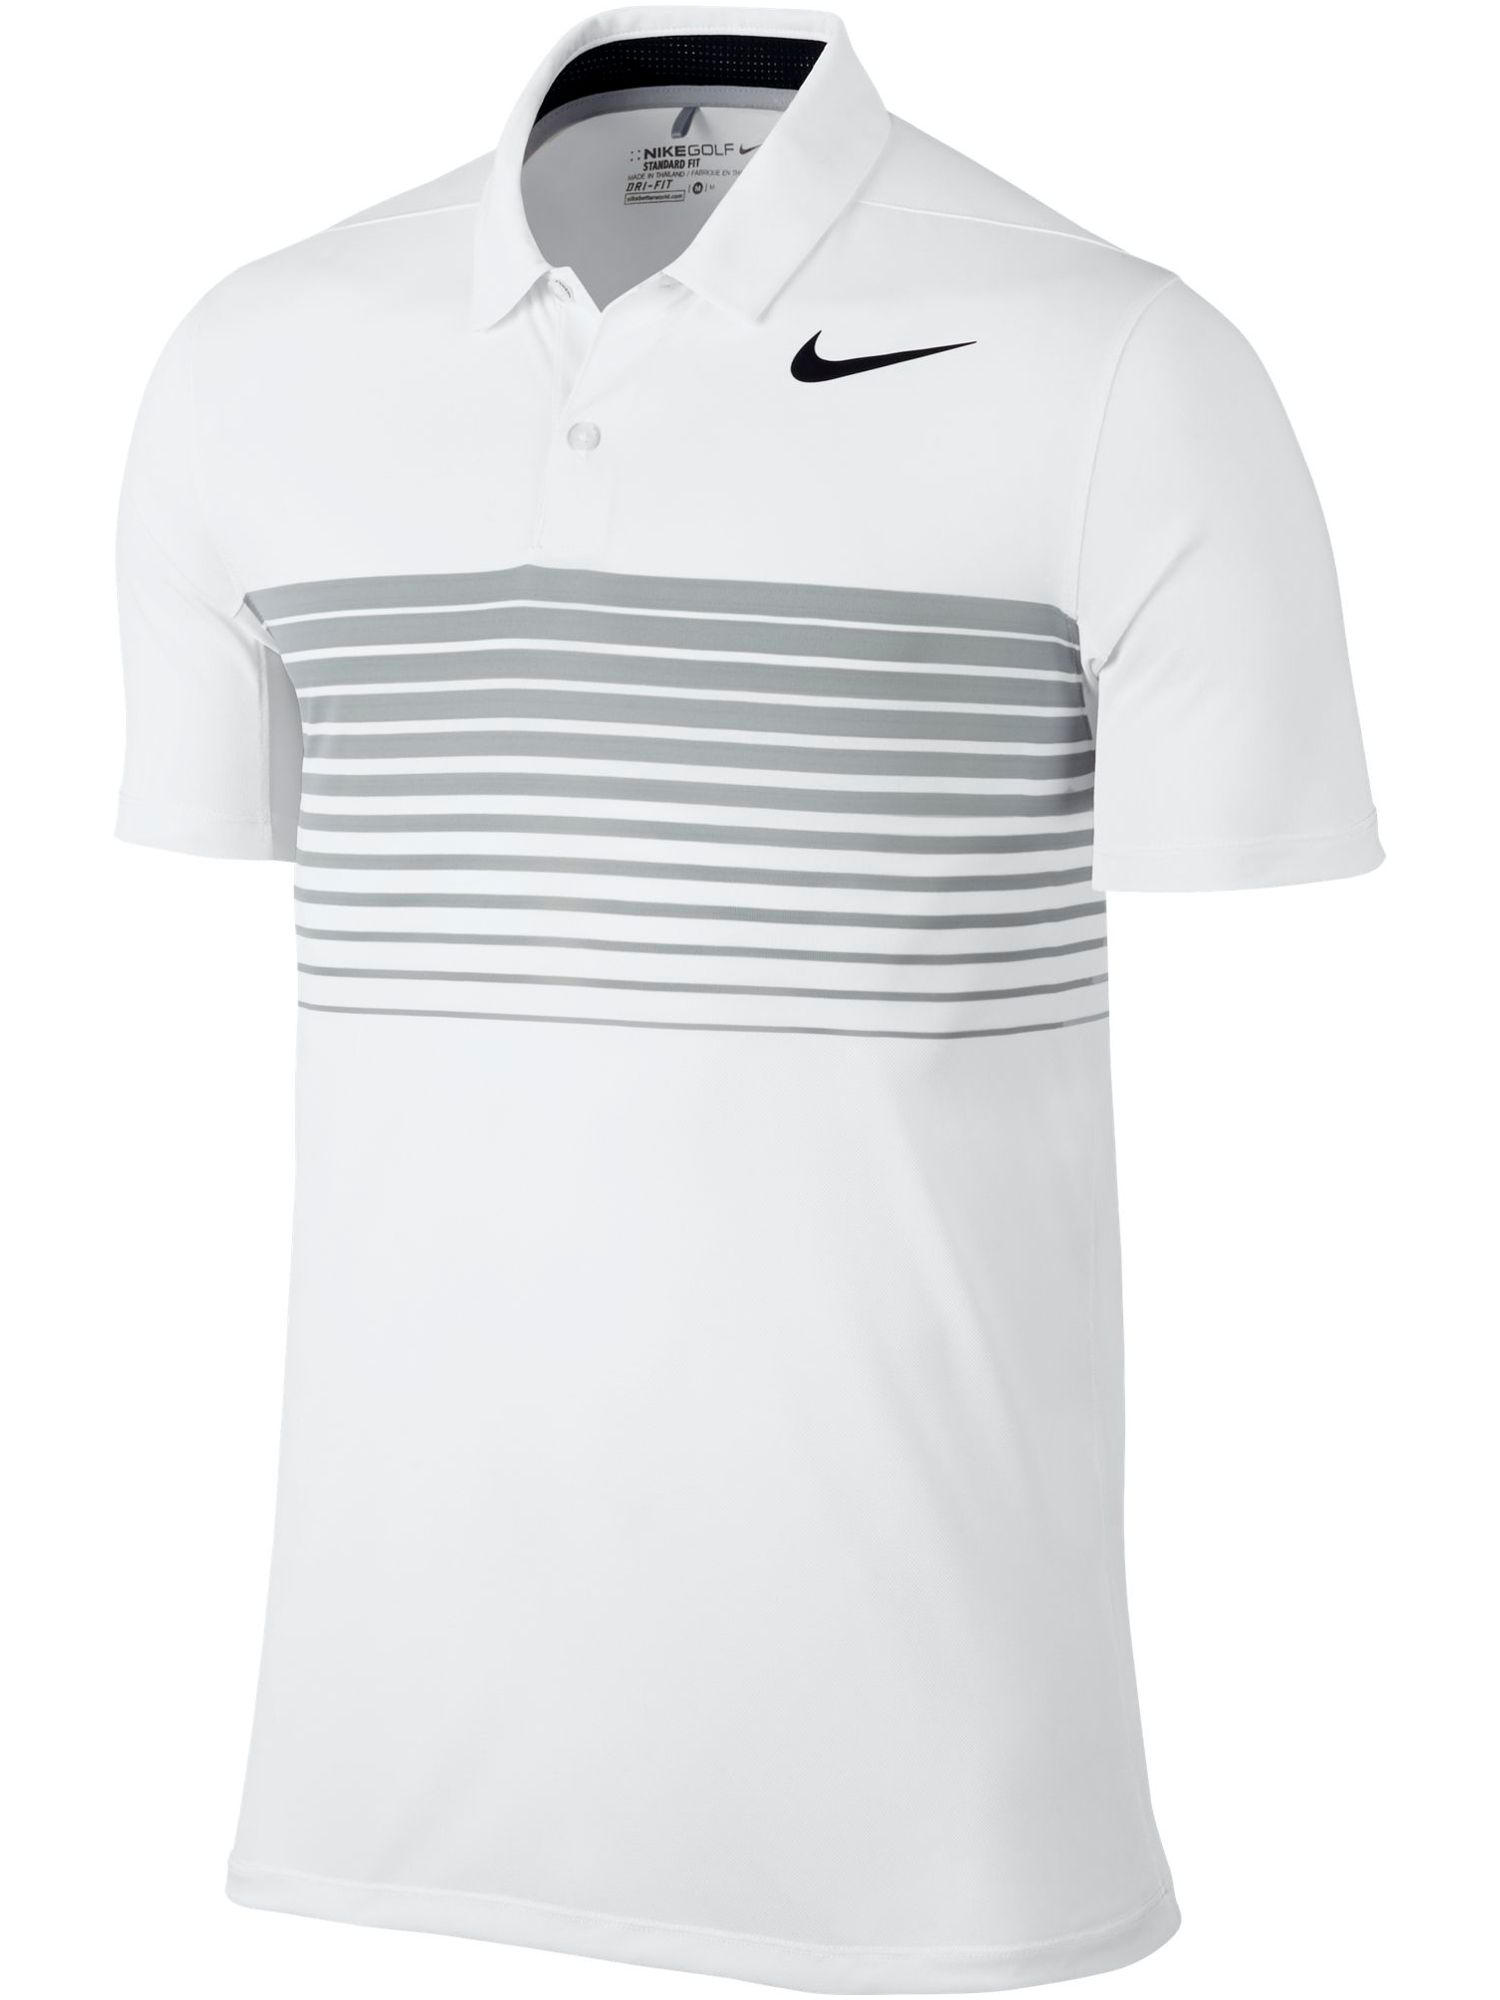 Men's Nike Mobility Speed Stripe Polo, White